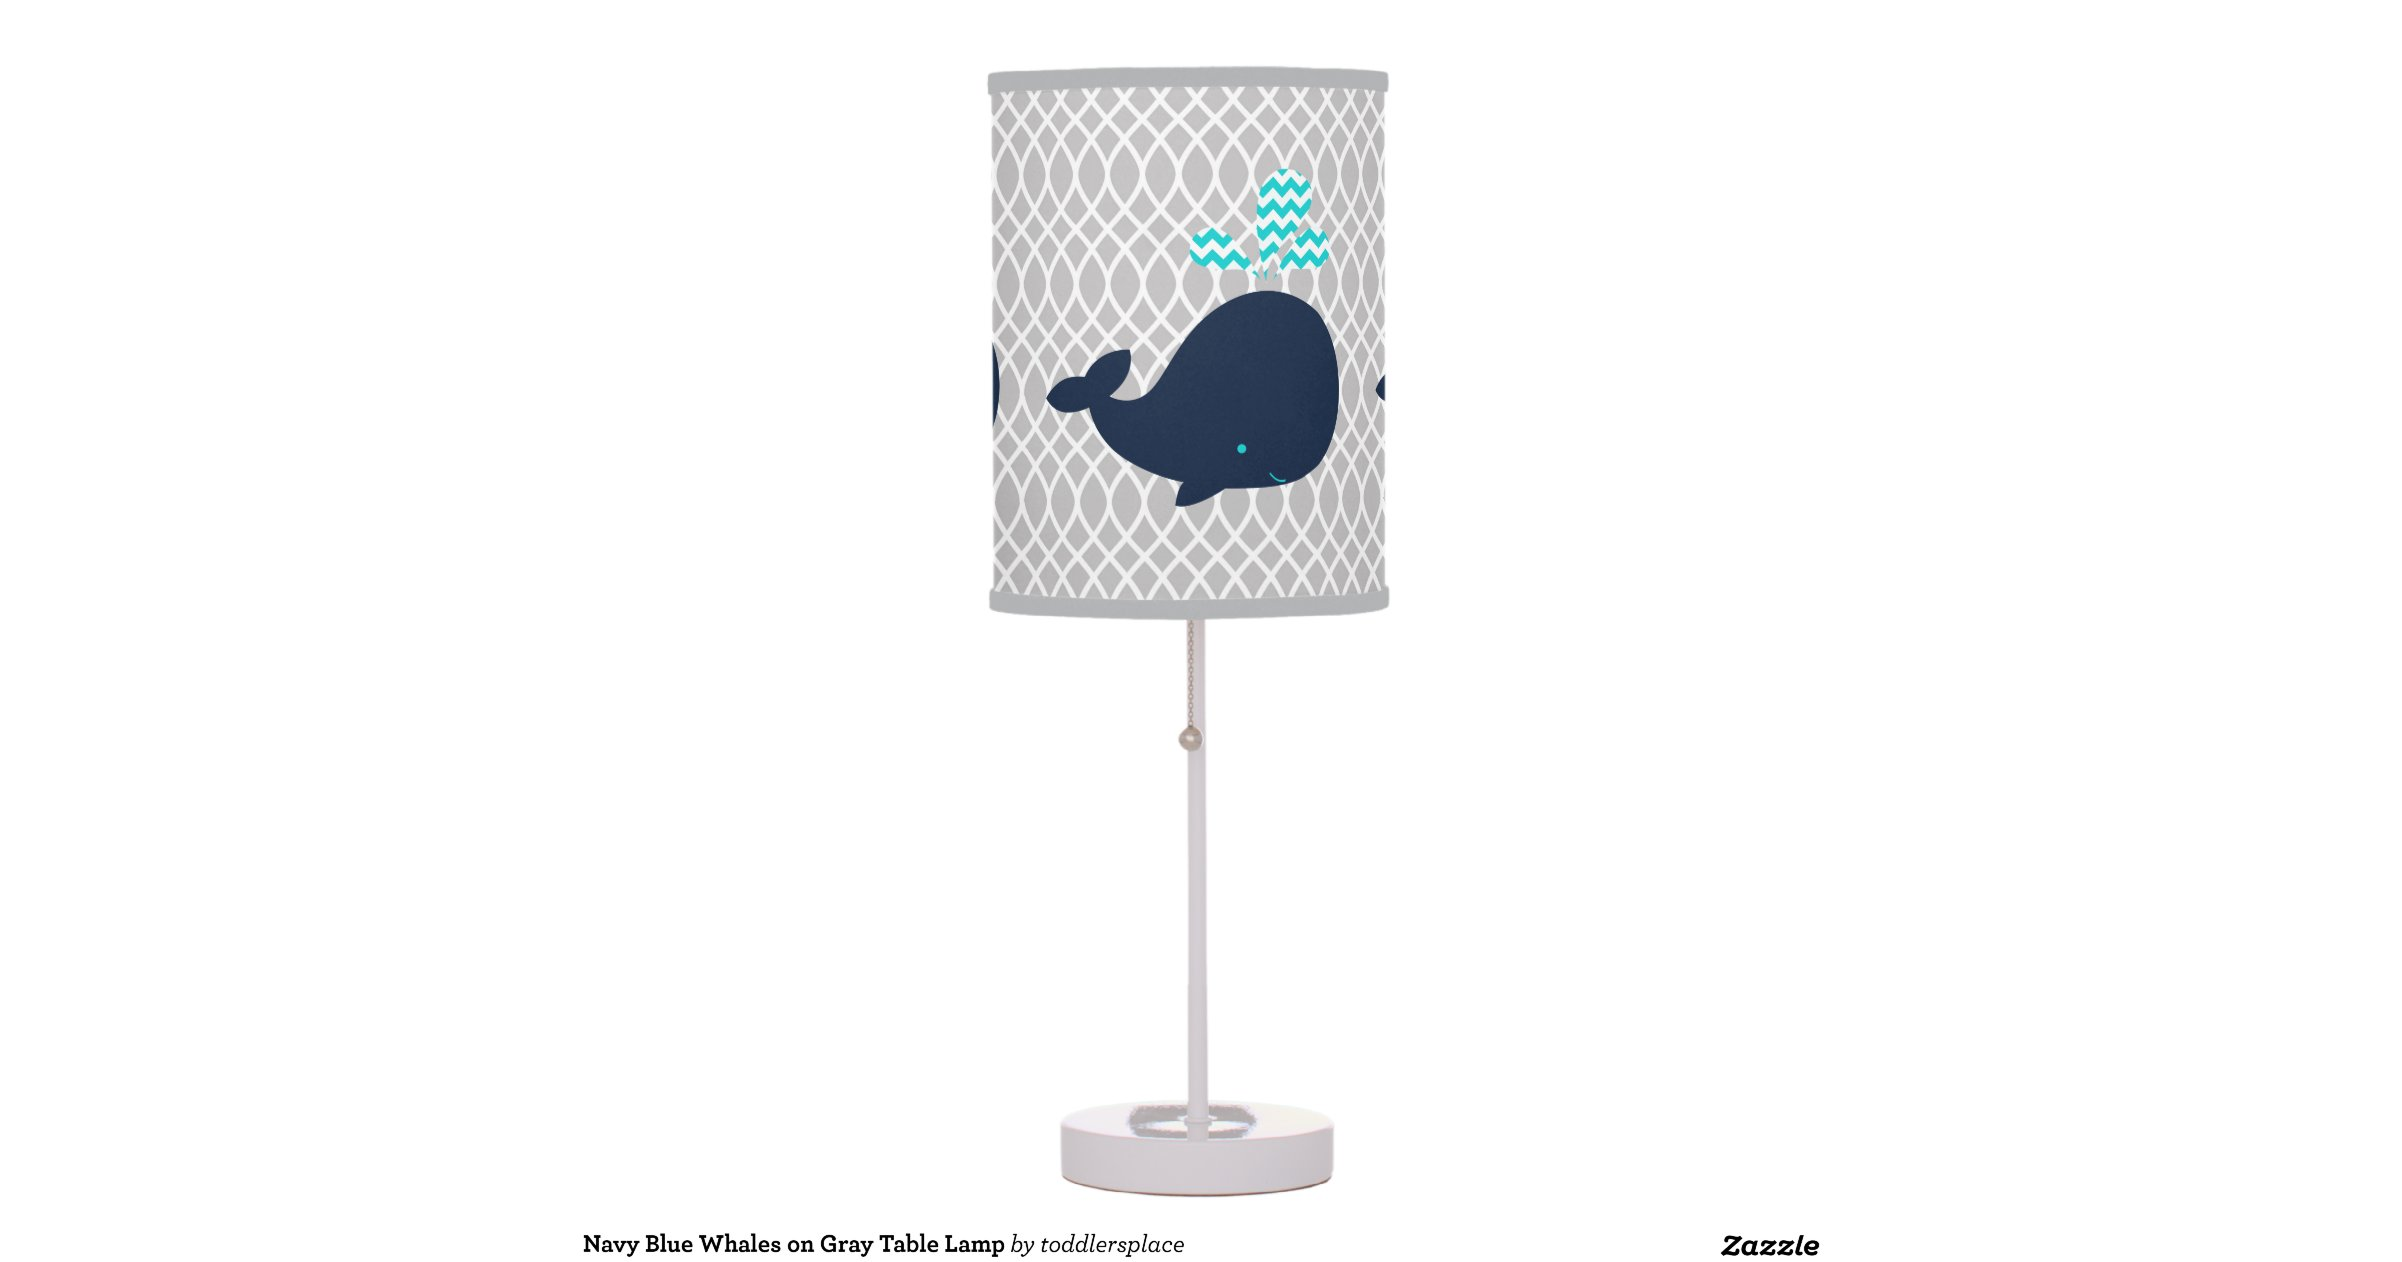 navy_blue_whales_on_gray_table_lamp ...